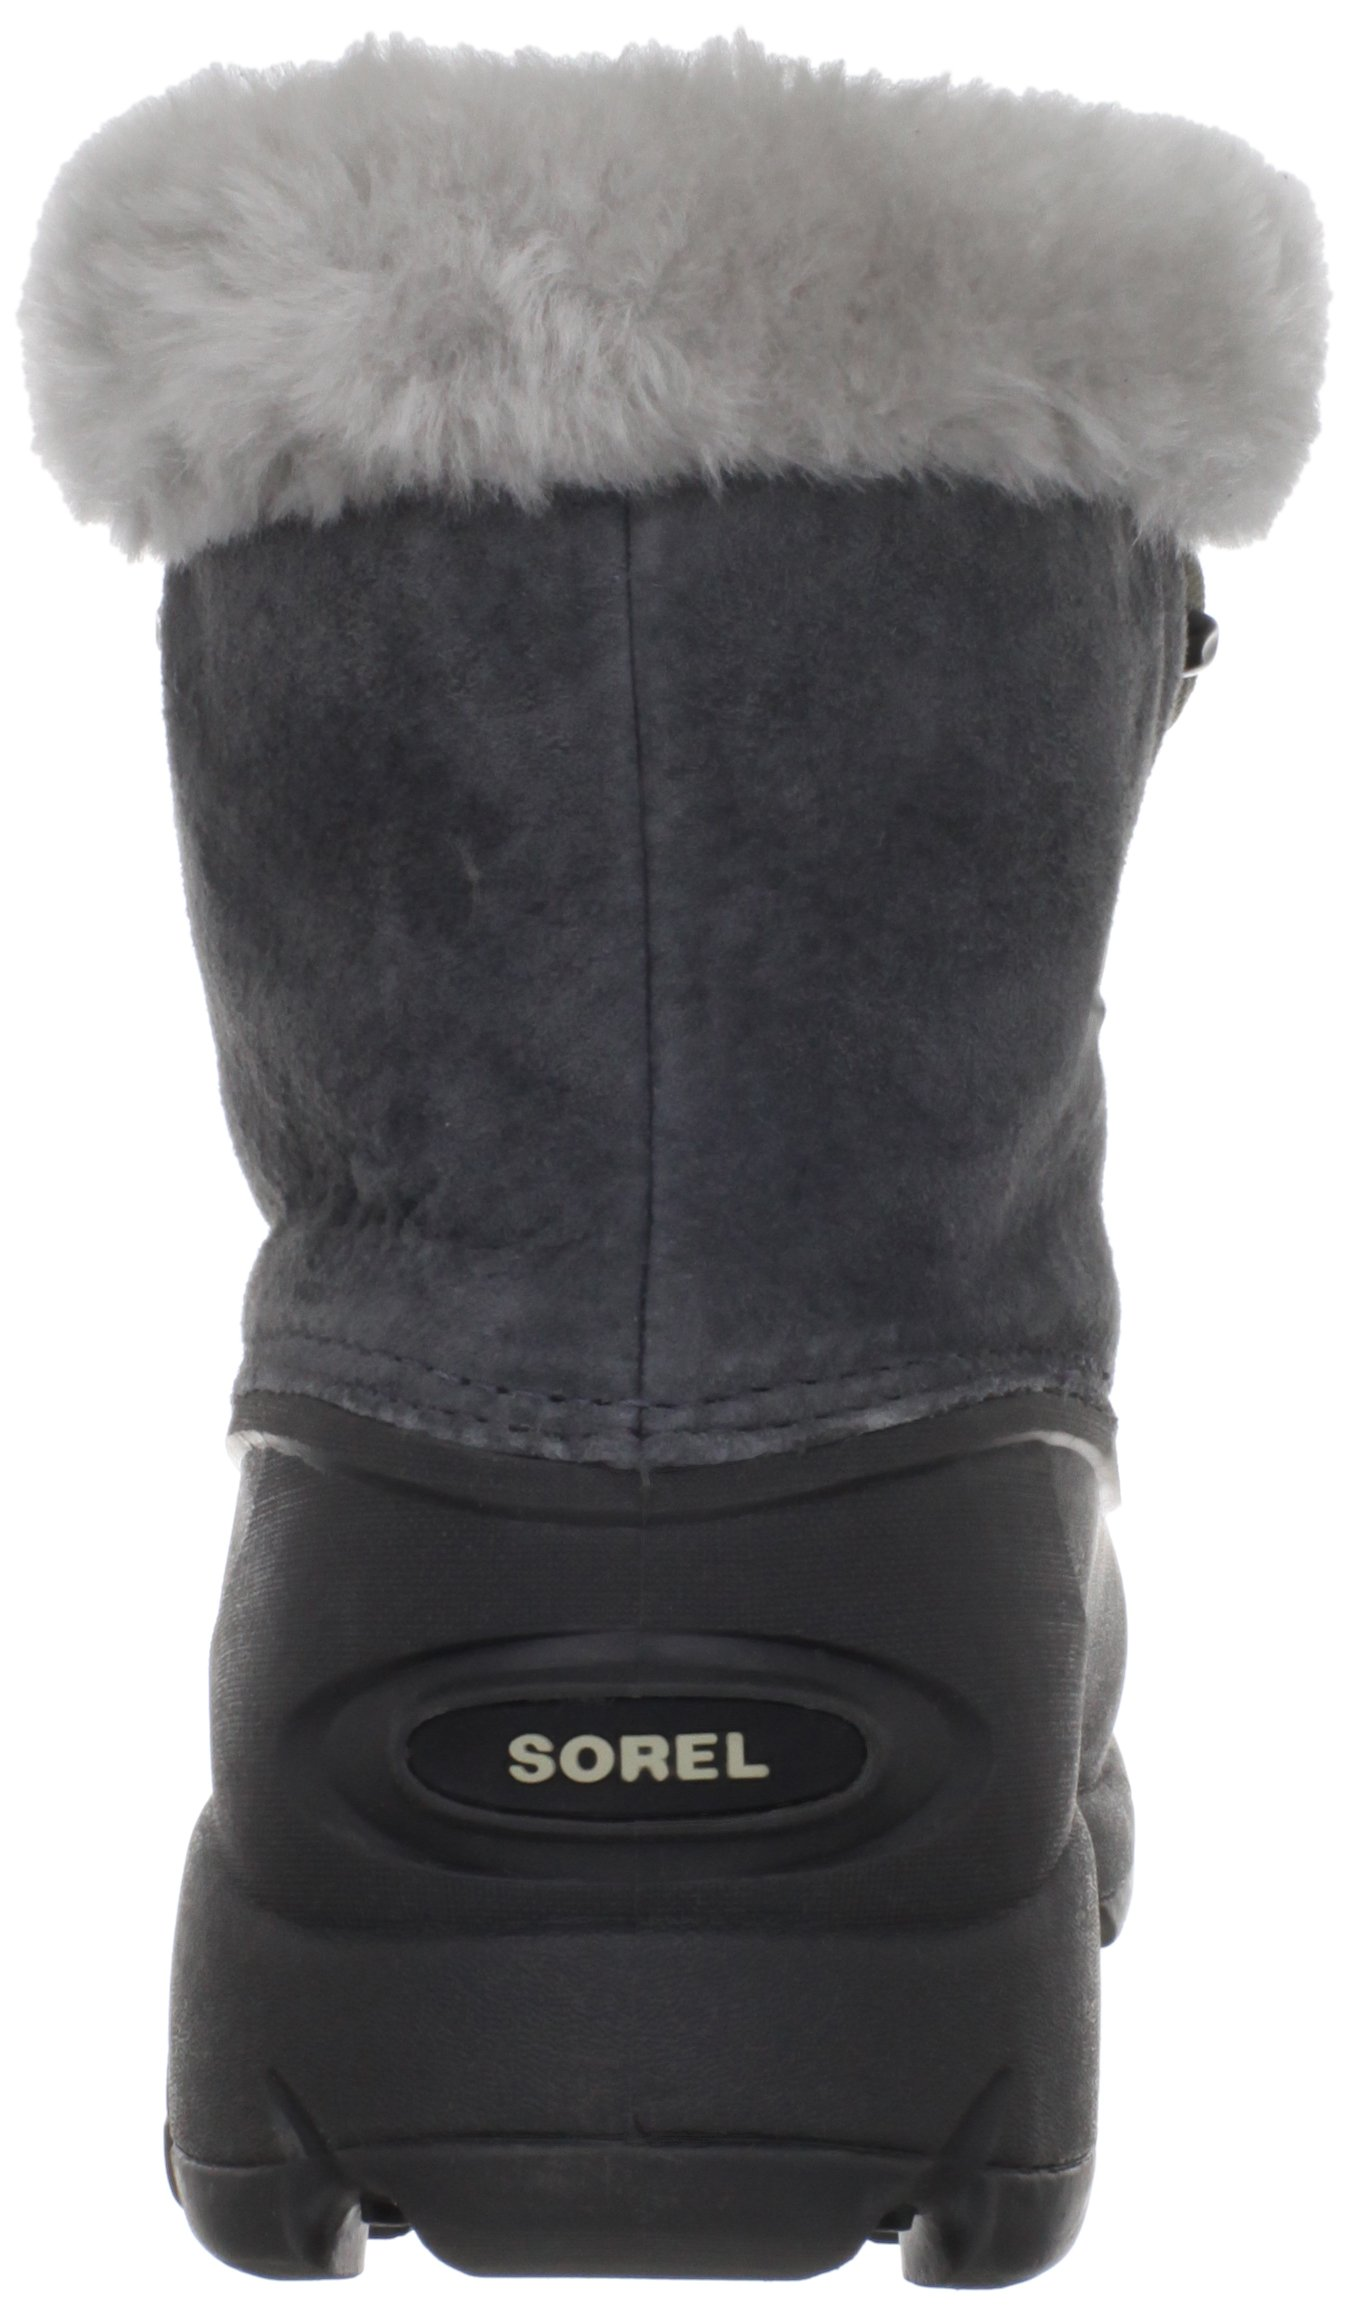 Sorel Women's Snow Angel Lace Boot,Charcoal,8 M US by SOREL (Image #2)